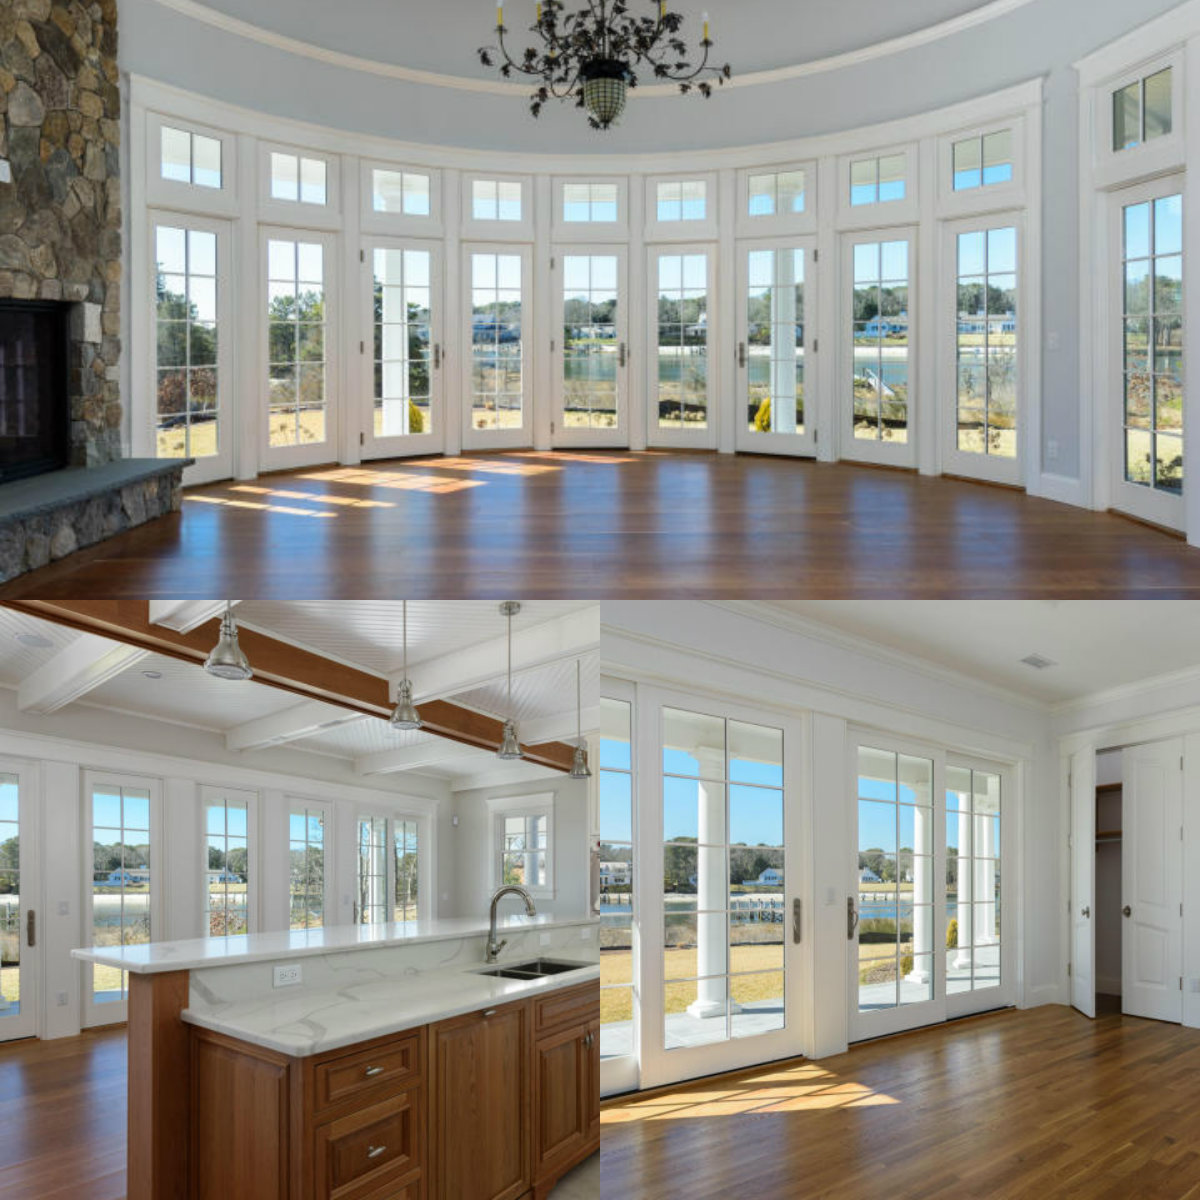 Images of rooms with windows in 501 Eel River Road in Osterville on Cape Cod MA